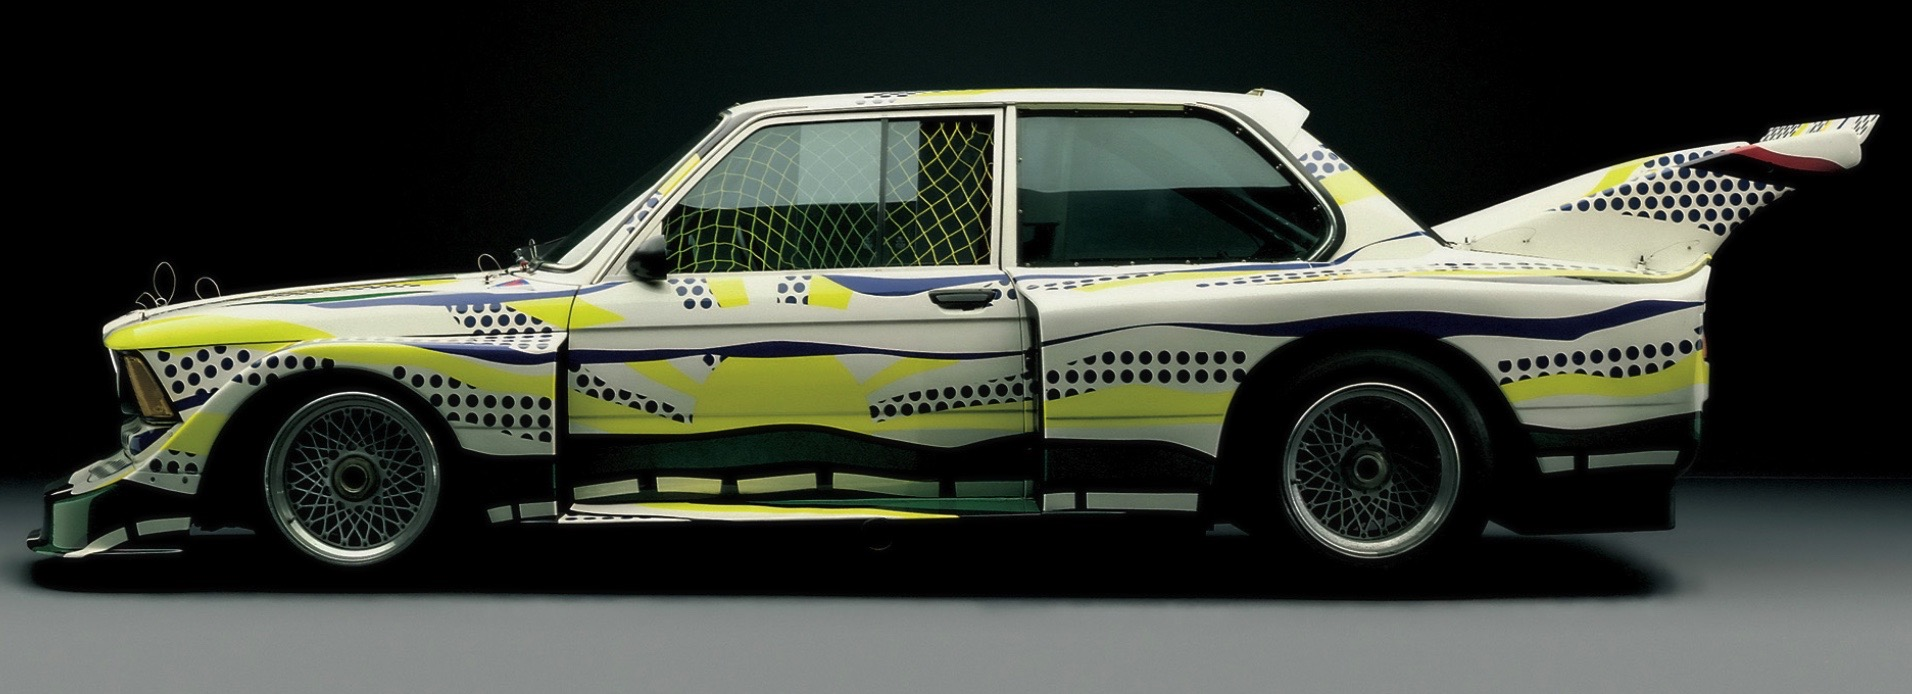 Roy Lichtenstein bmw art car15